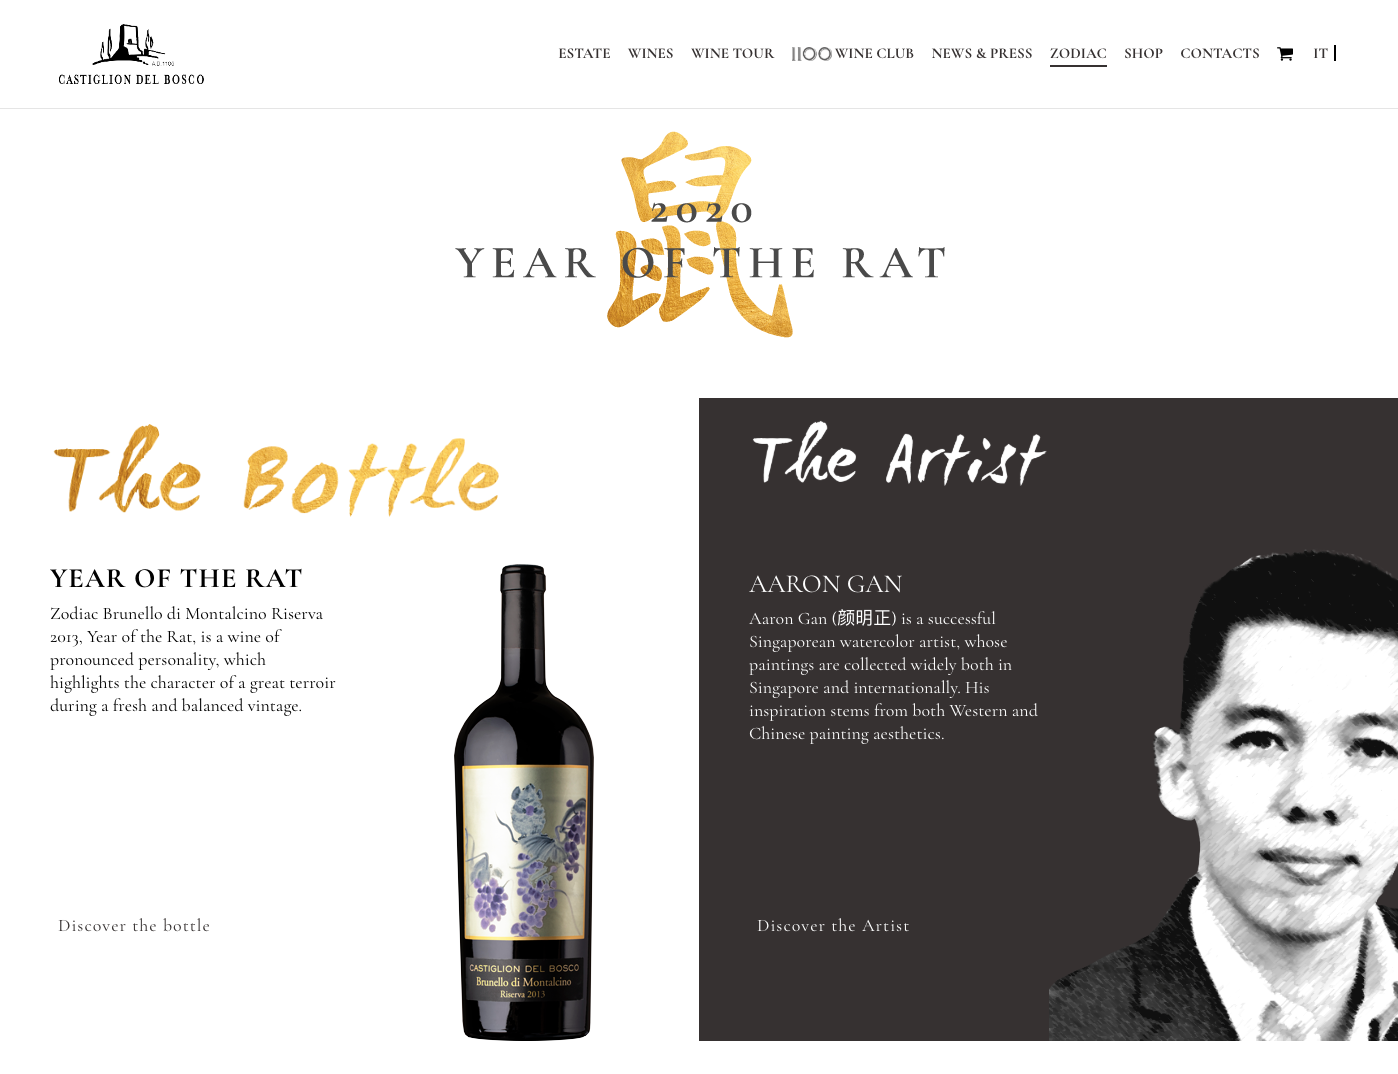 Year of the rat Brunello